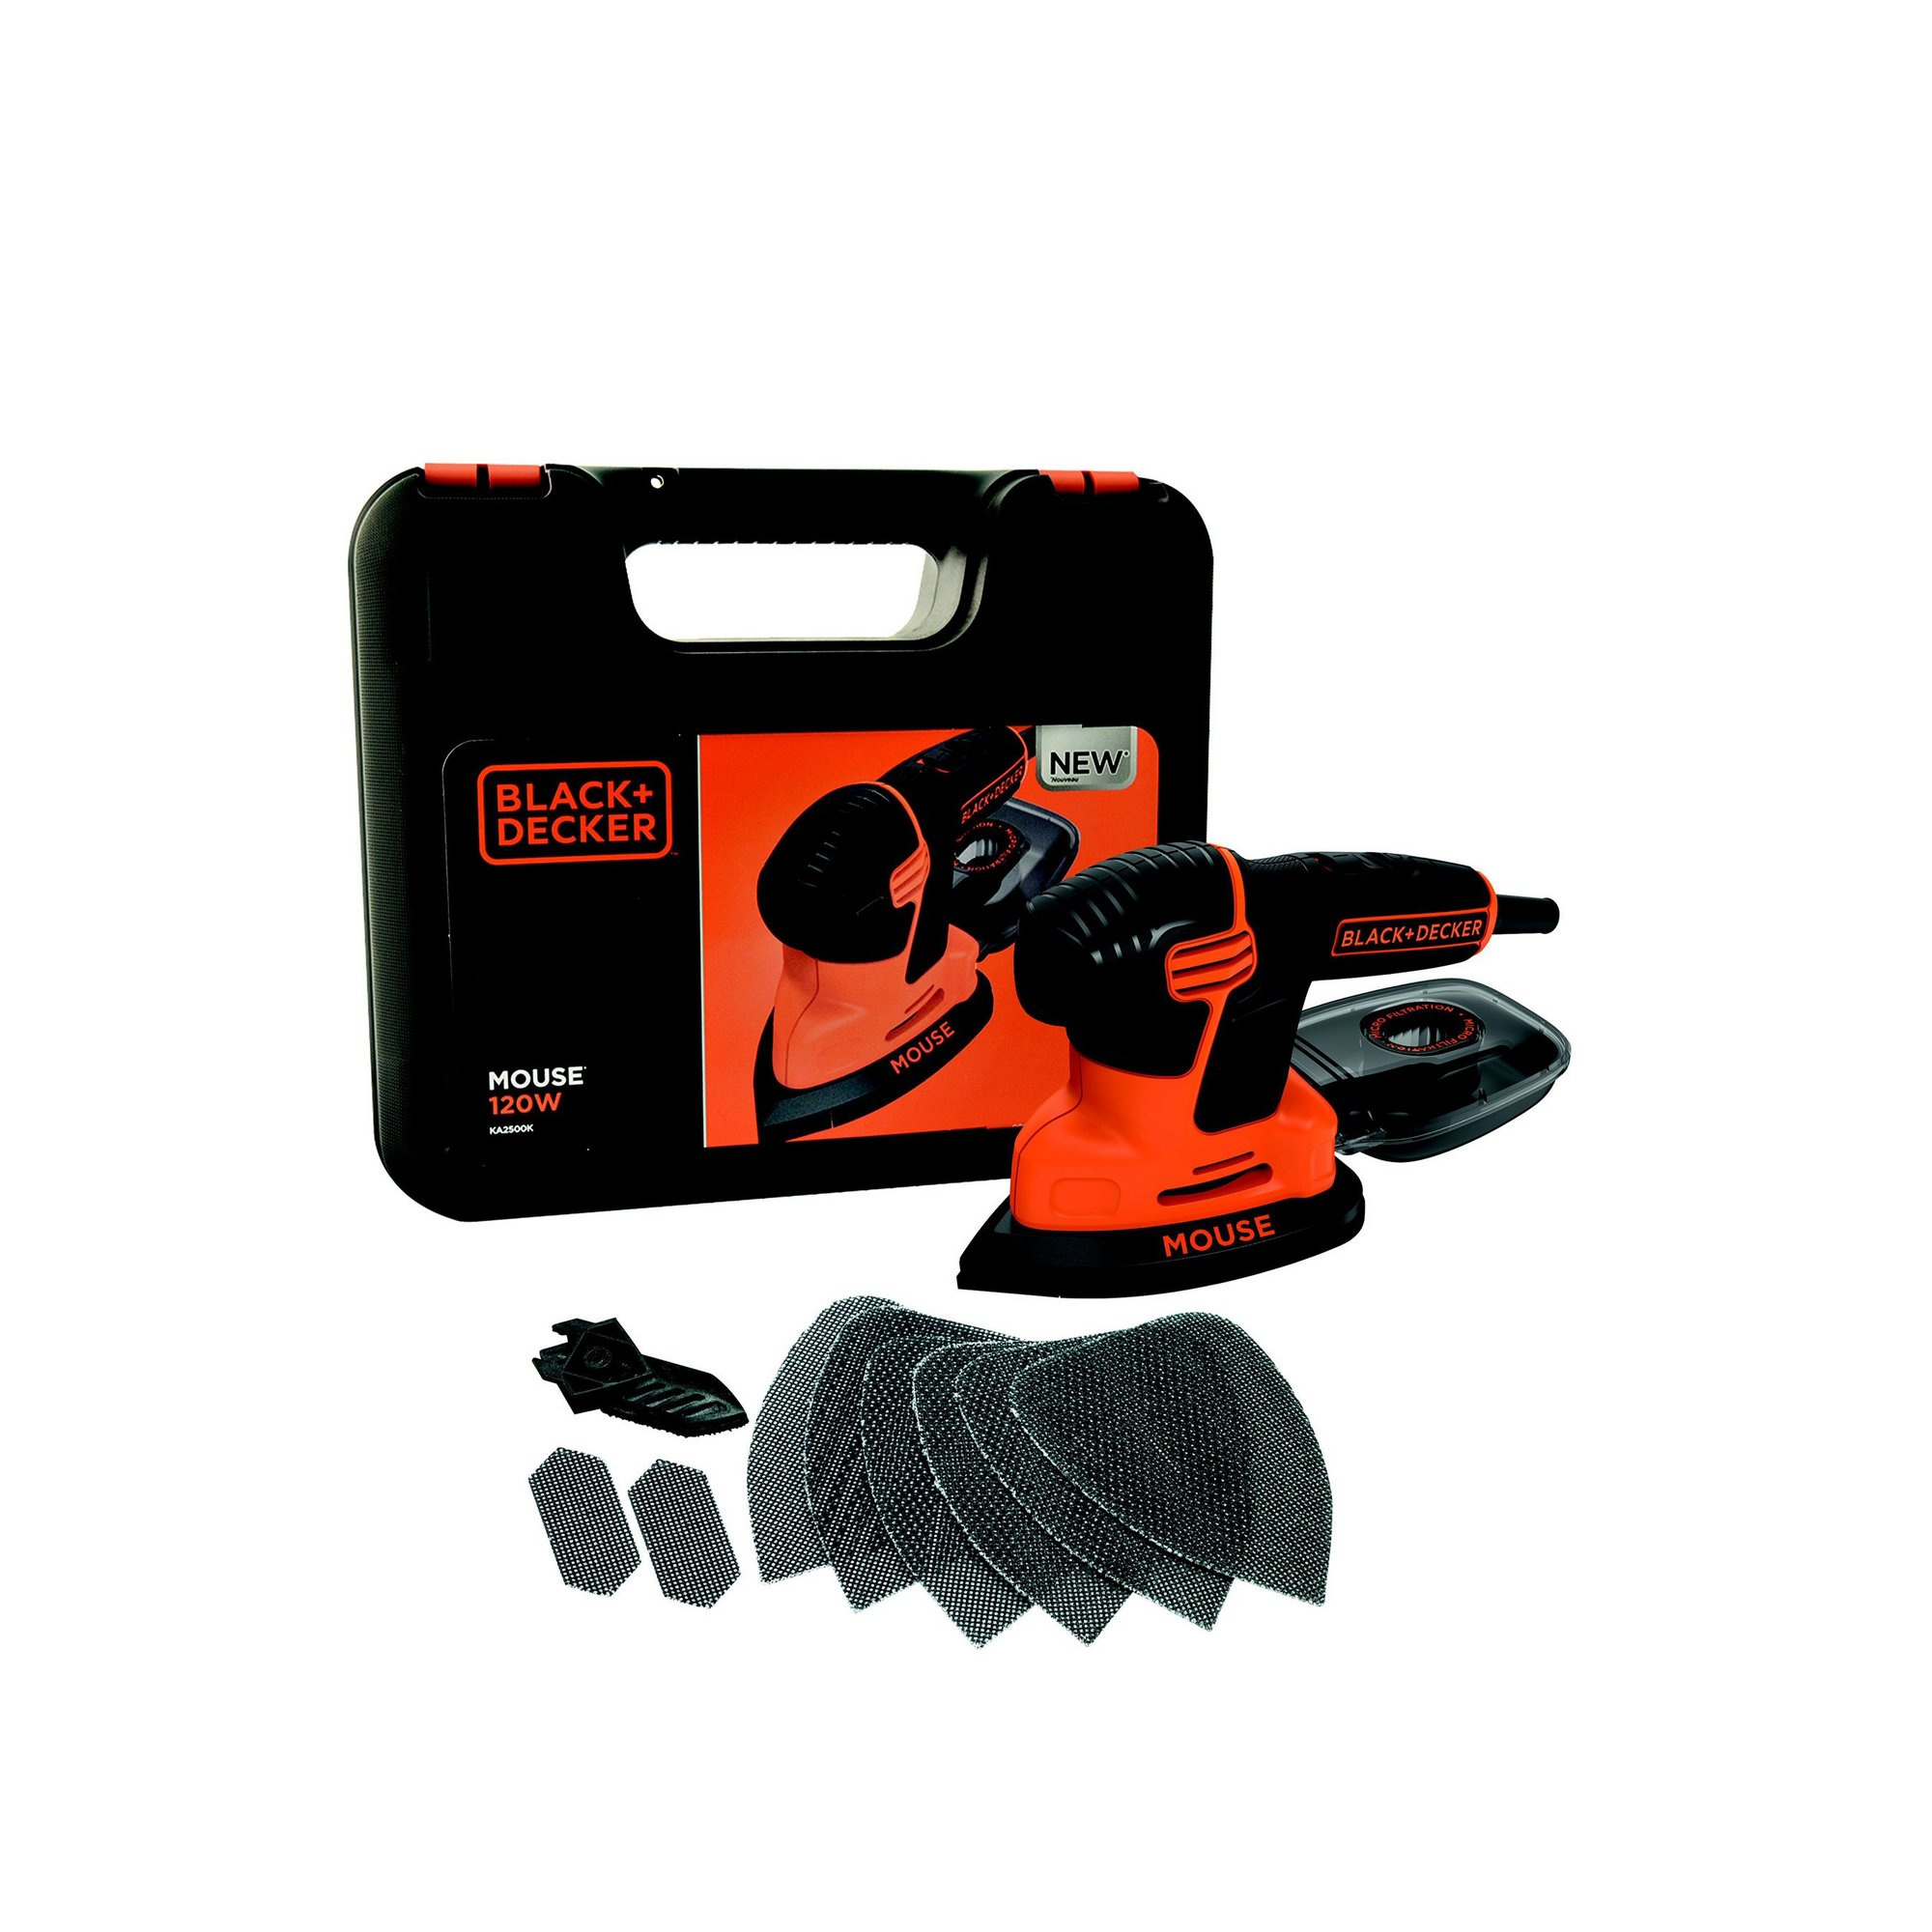 Image of Compact Premium Mouse Sander with 6 Mesh Sanding Sheets + Kit Box